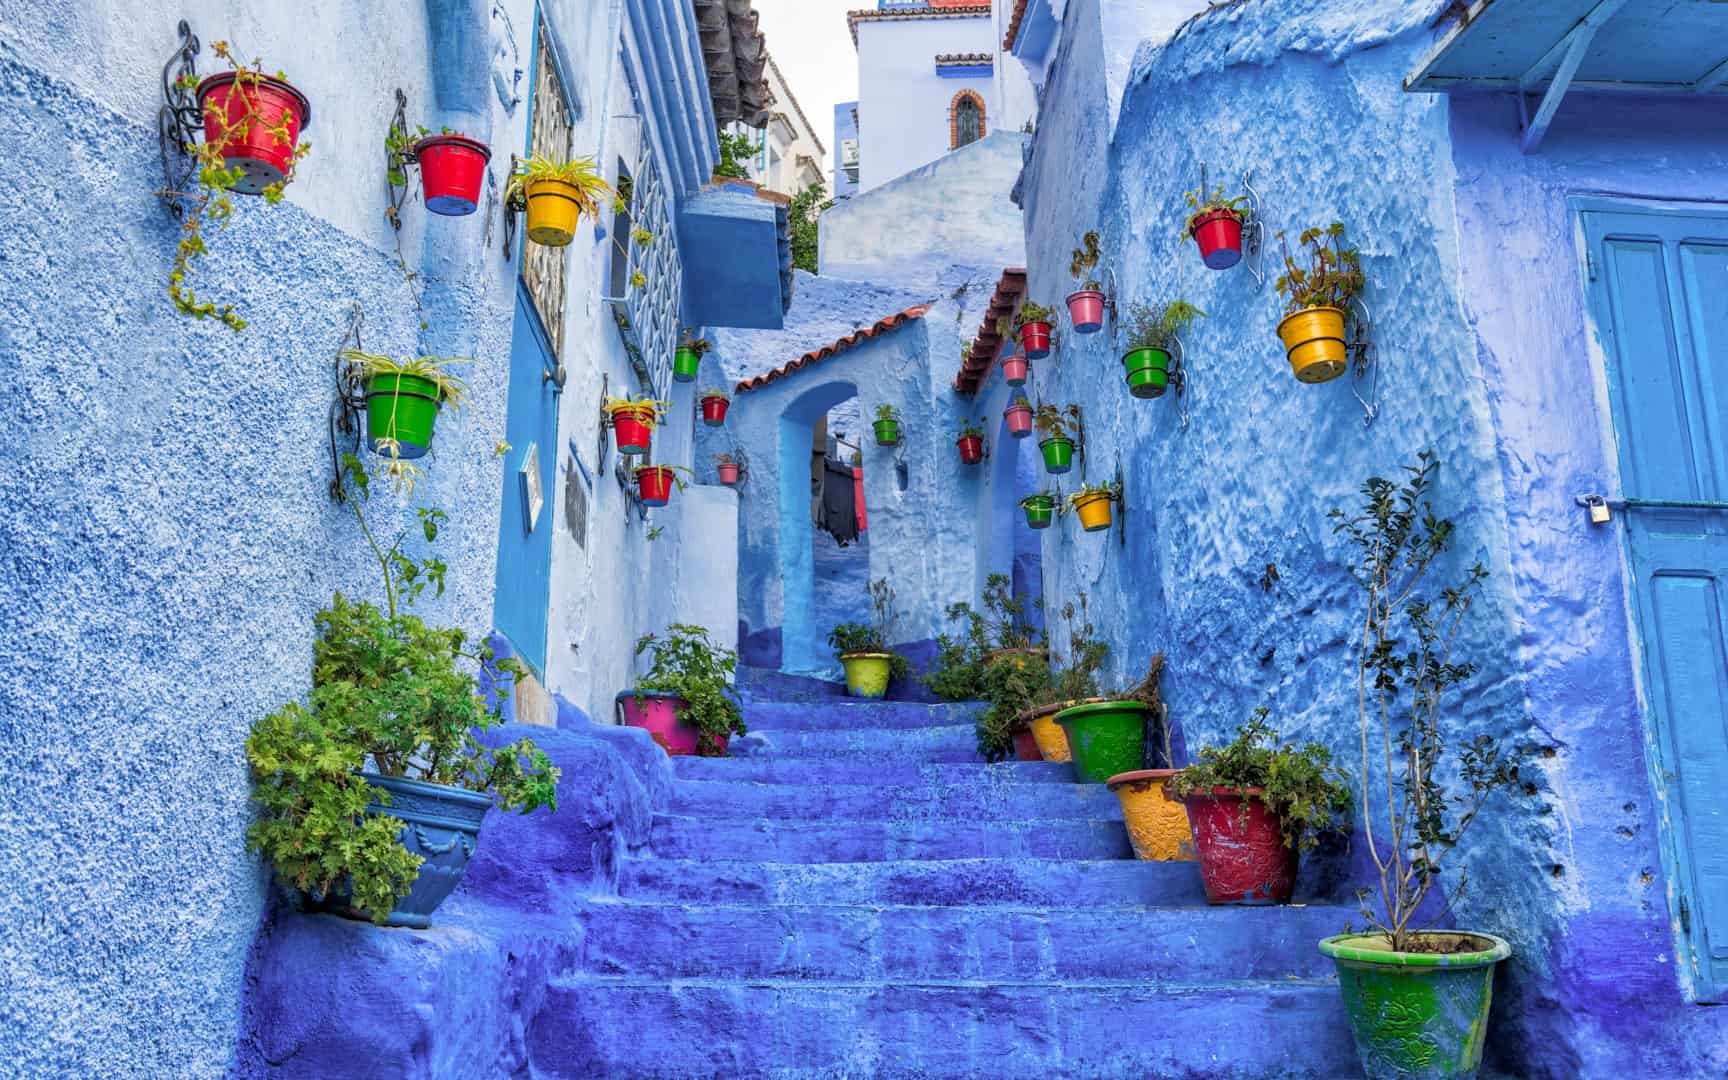 Morocco-Chefchaouen-street-view